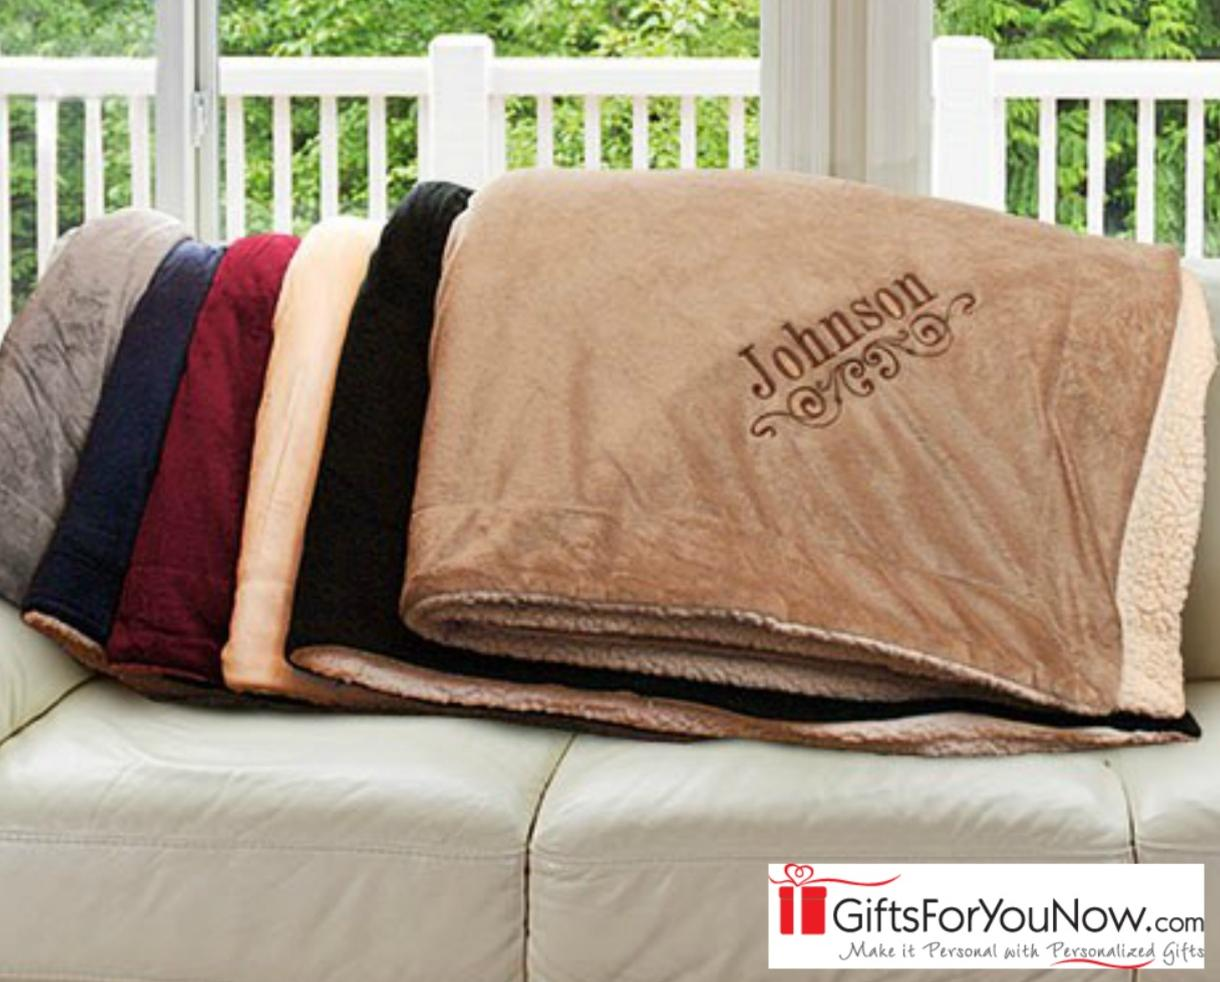 $25.99 for Personalized Embroidered Sherpa Blanket - 6 Color Choices - Makes a Great Gift! (39% Off)